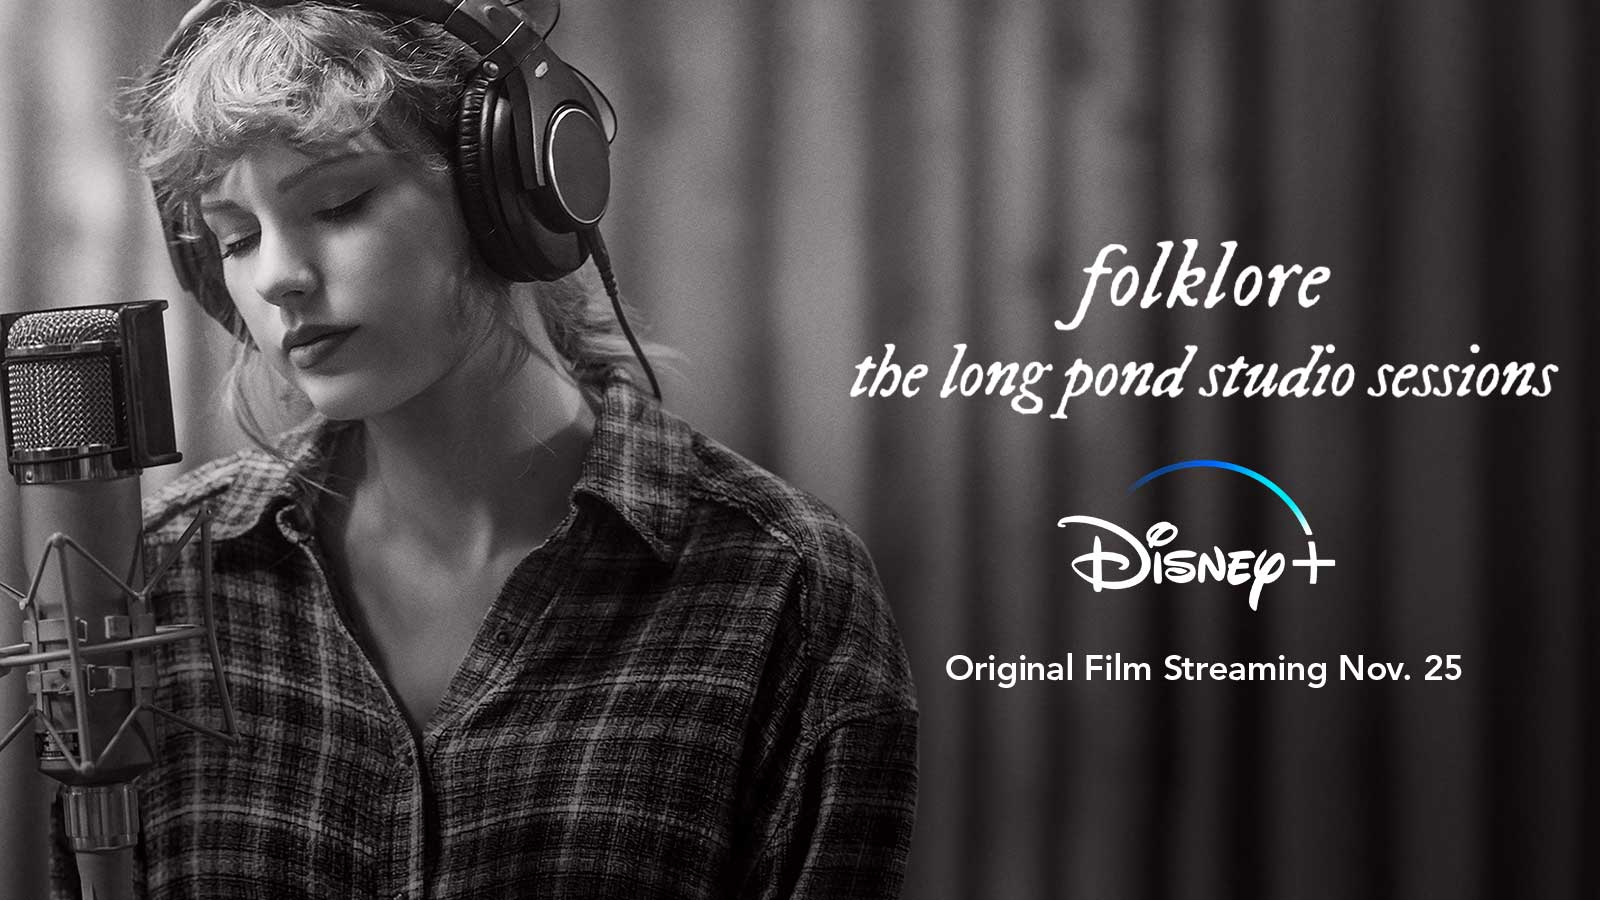 Folklore the long pond studio sessions Disney+ Original Film Streaming Nov 25.